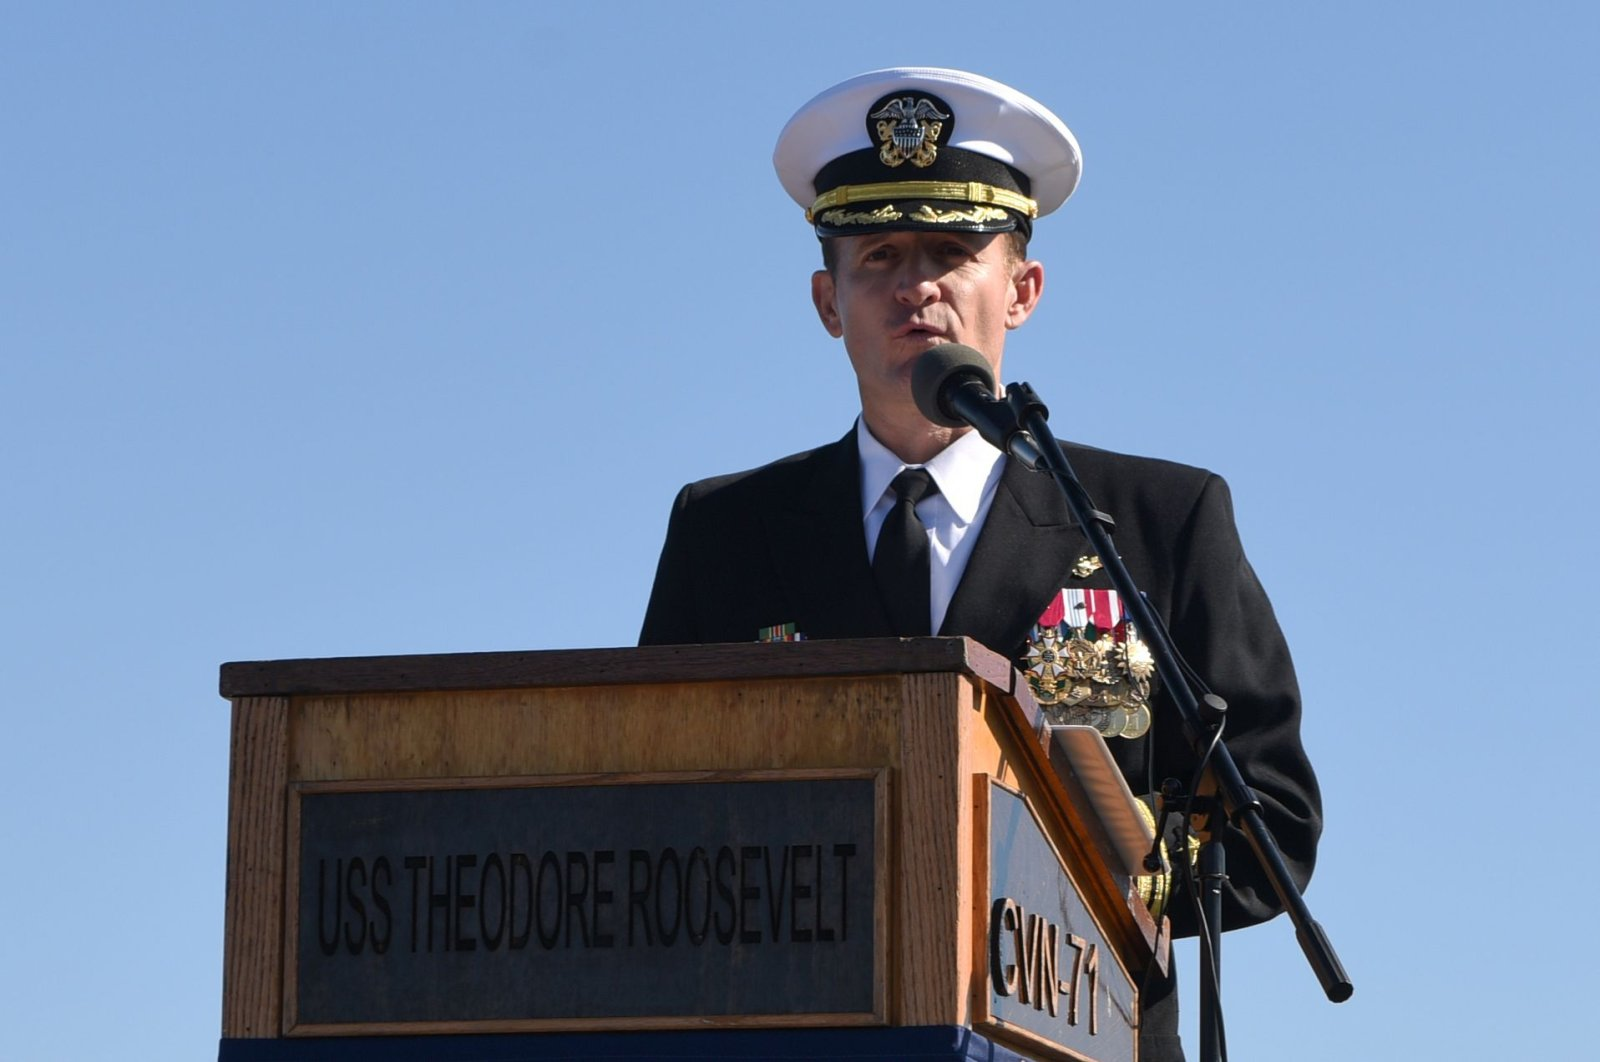 This handout photo released by the U.S. Navy shows Capt. Brett Crozier addressing the crew for the first time as commanding officer of the aircraft carrier USS Theodore Roosevelt (CVN 71) during a change of command ceremony on the ship's flight deck in San Diego, California, Nov. 1, 2019. (AFP Photo)